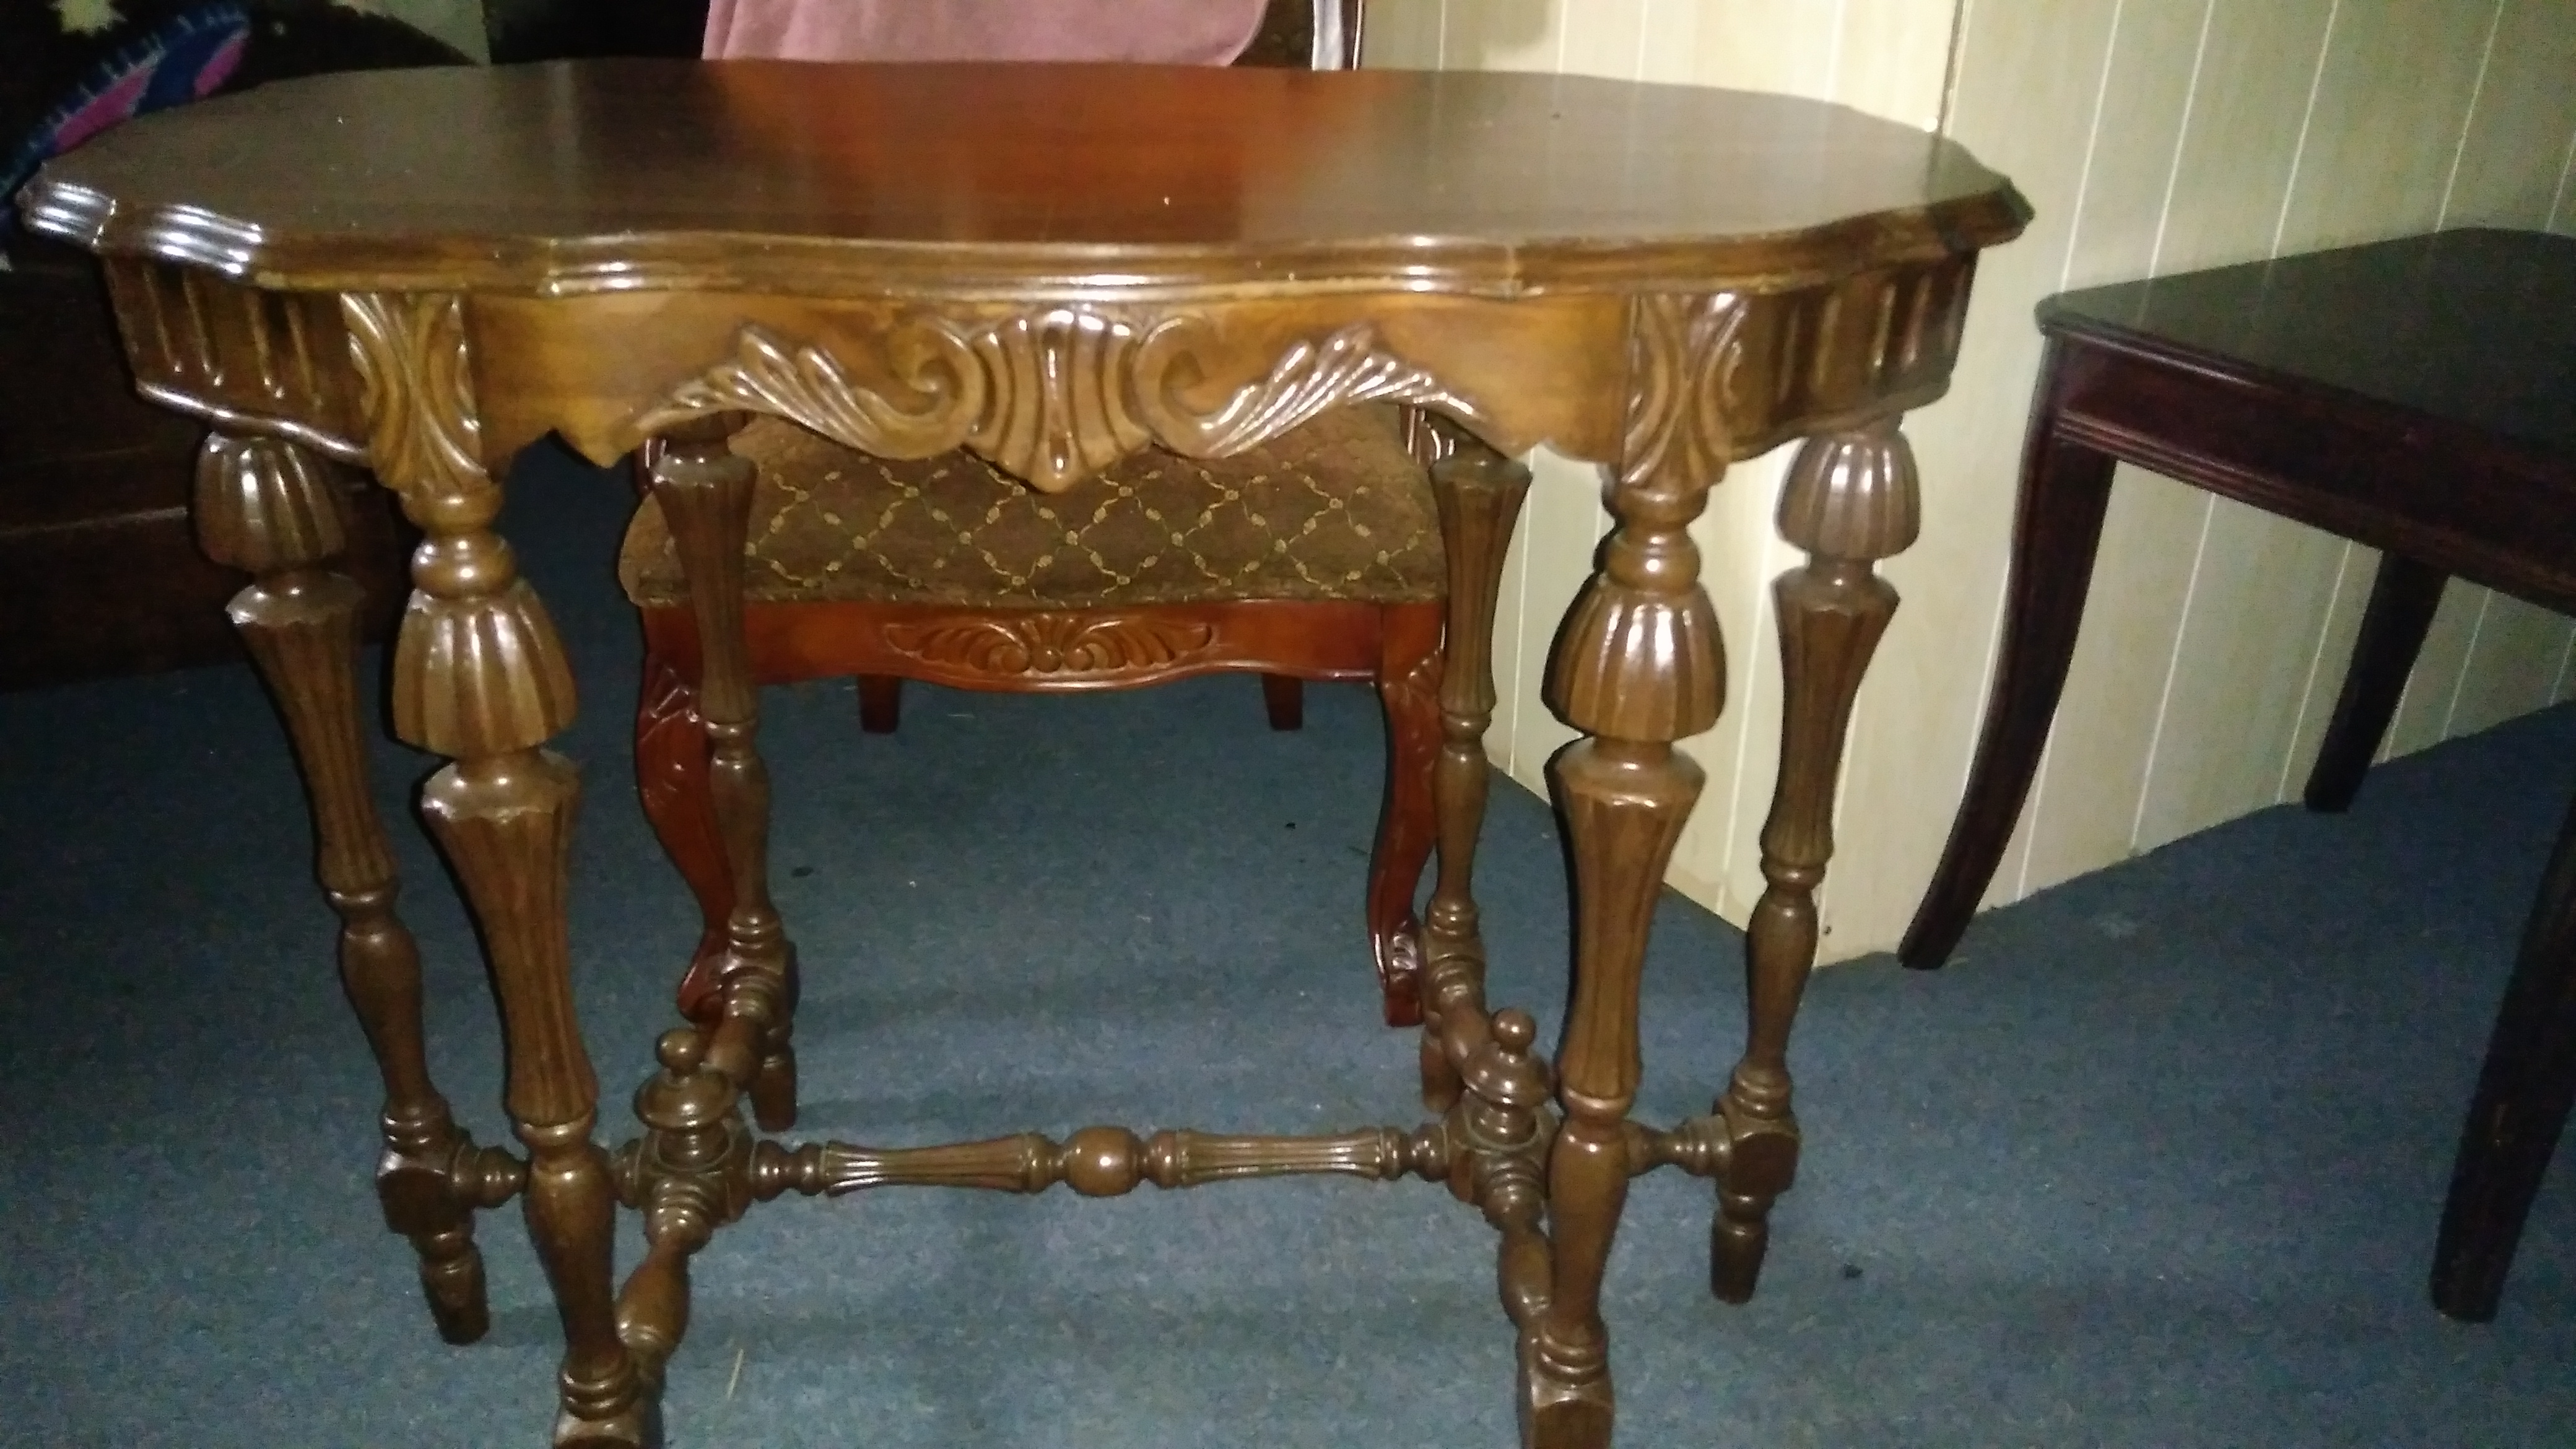 Antique table chair